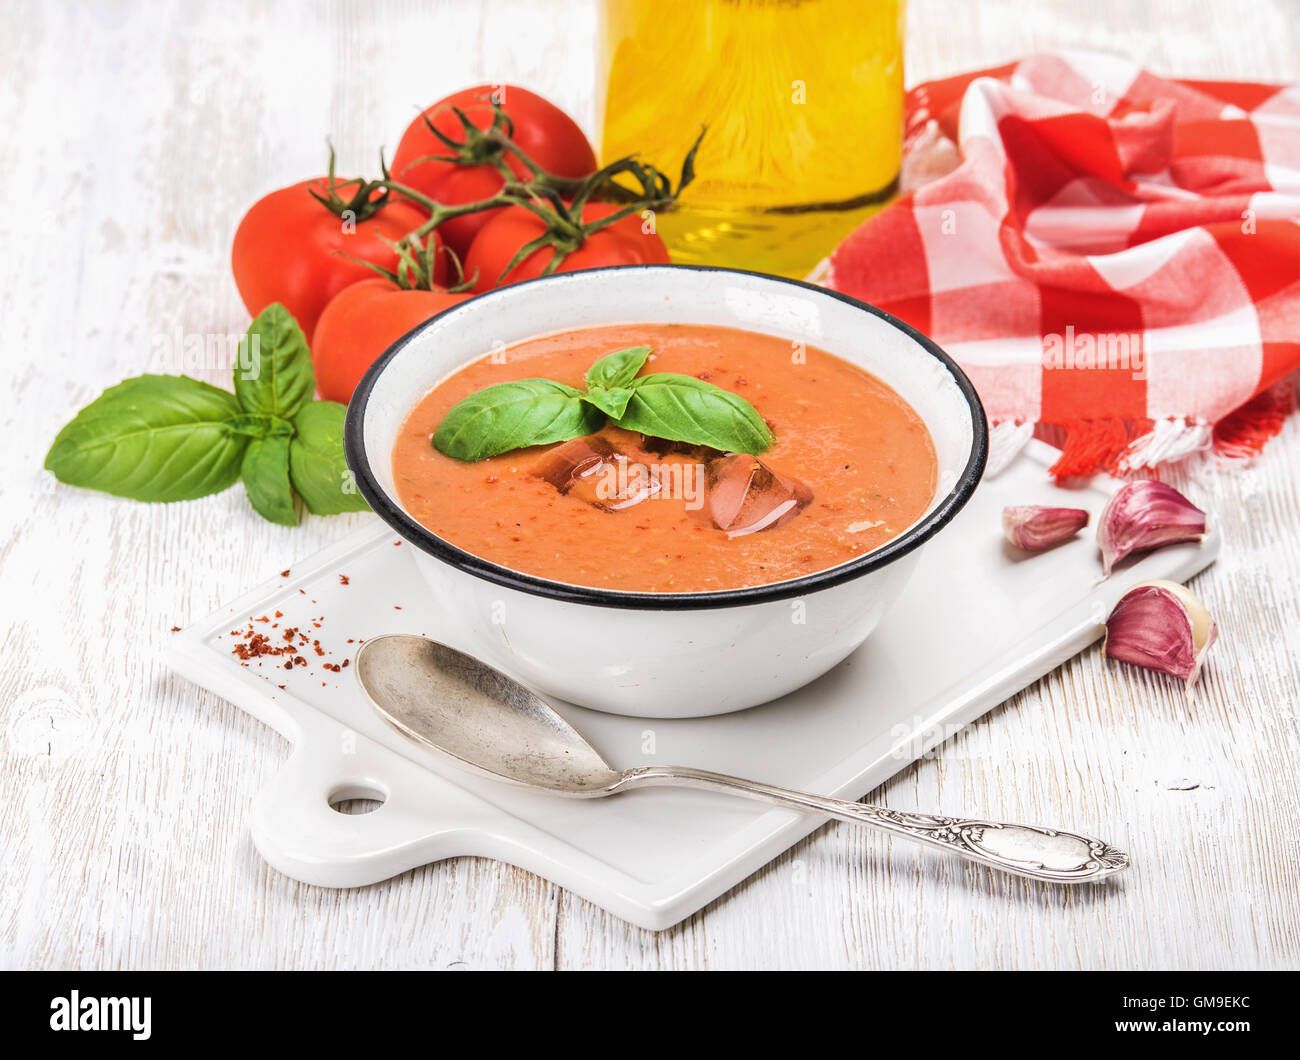 Cold gazpacho soup with ice, basil and fresh tomatoes - Stock Image